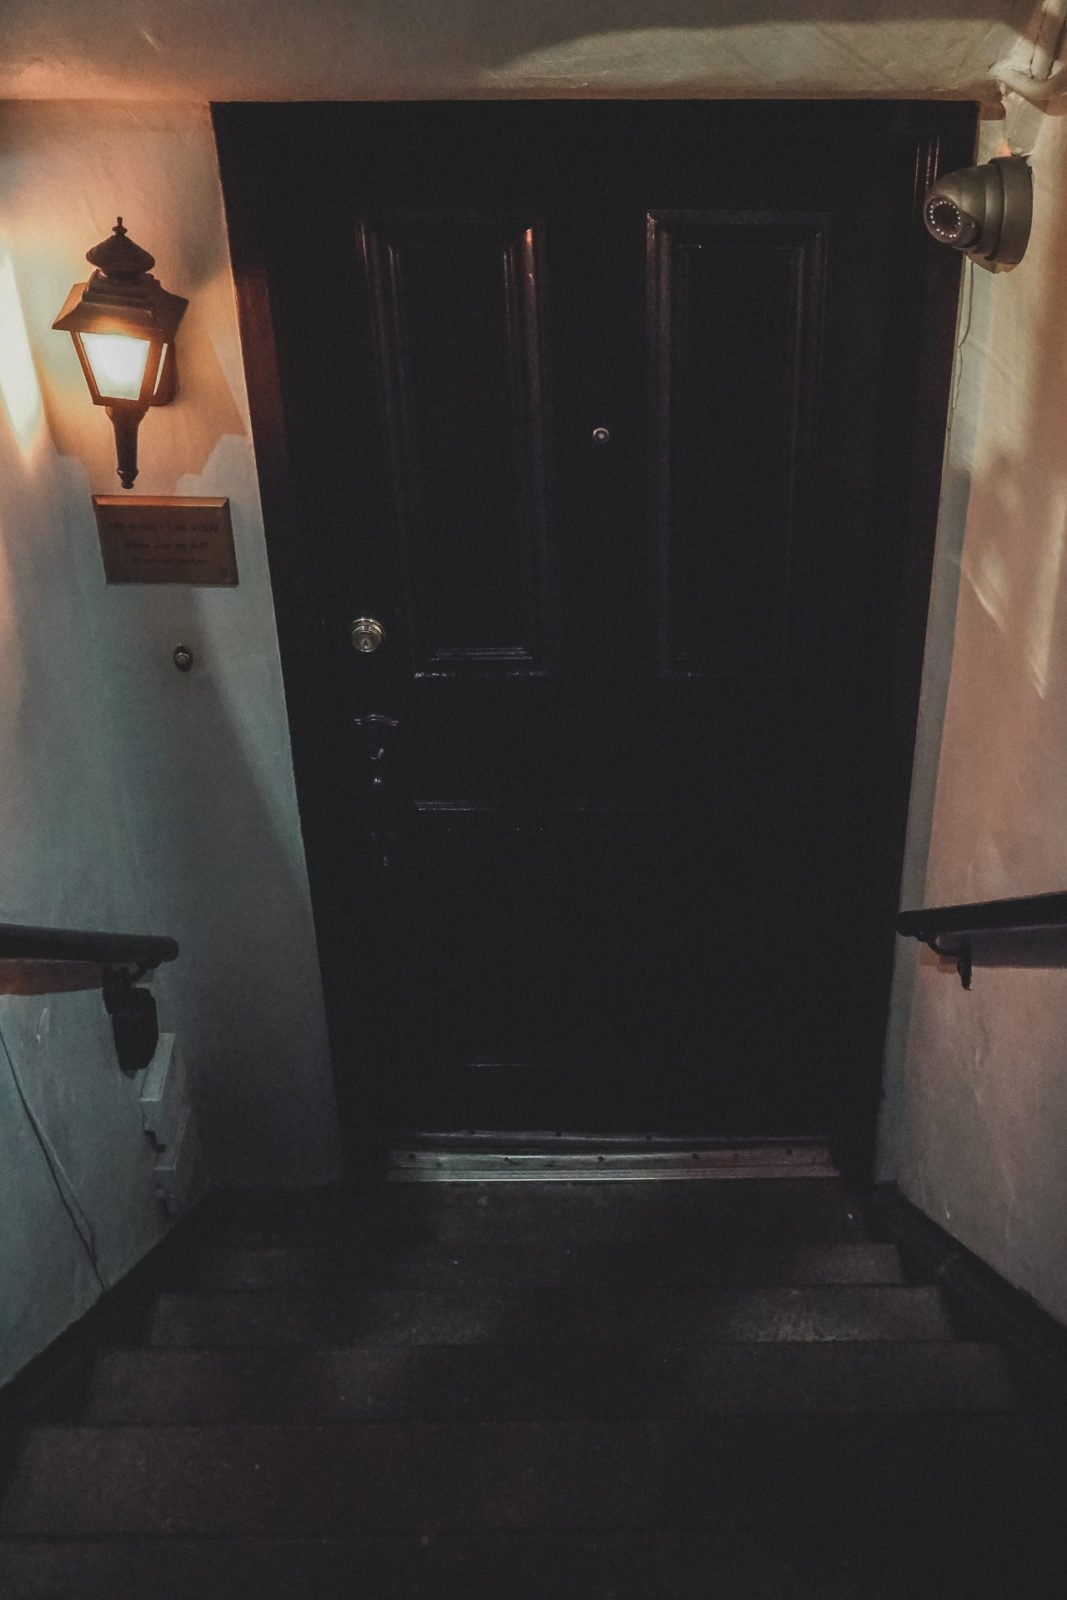 Raines Law Room New York City Secret Bar entrance